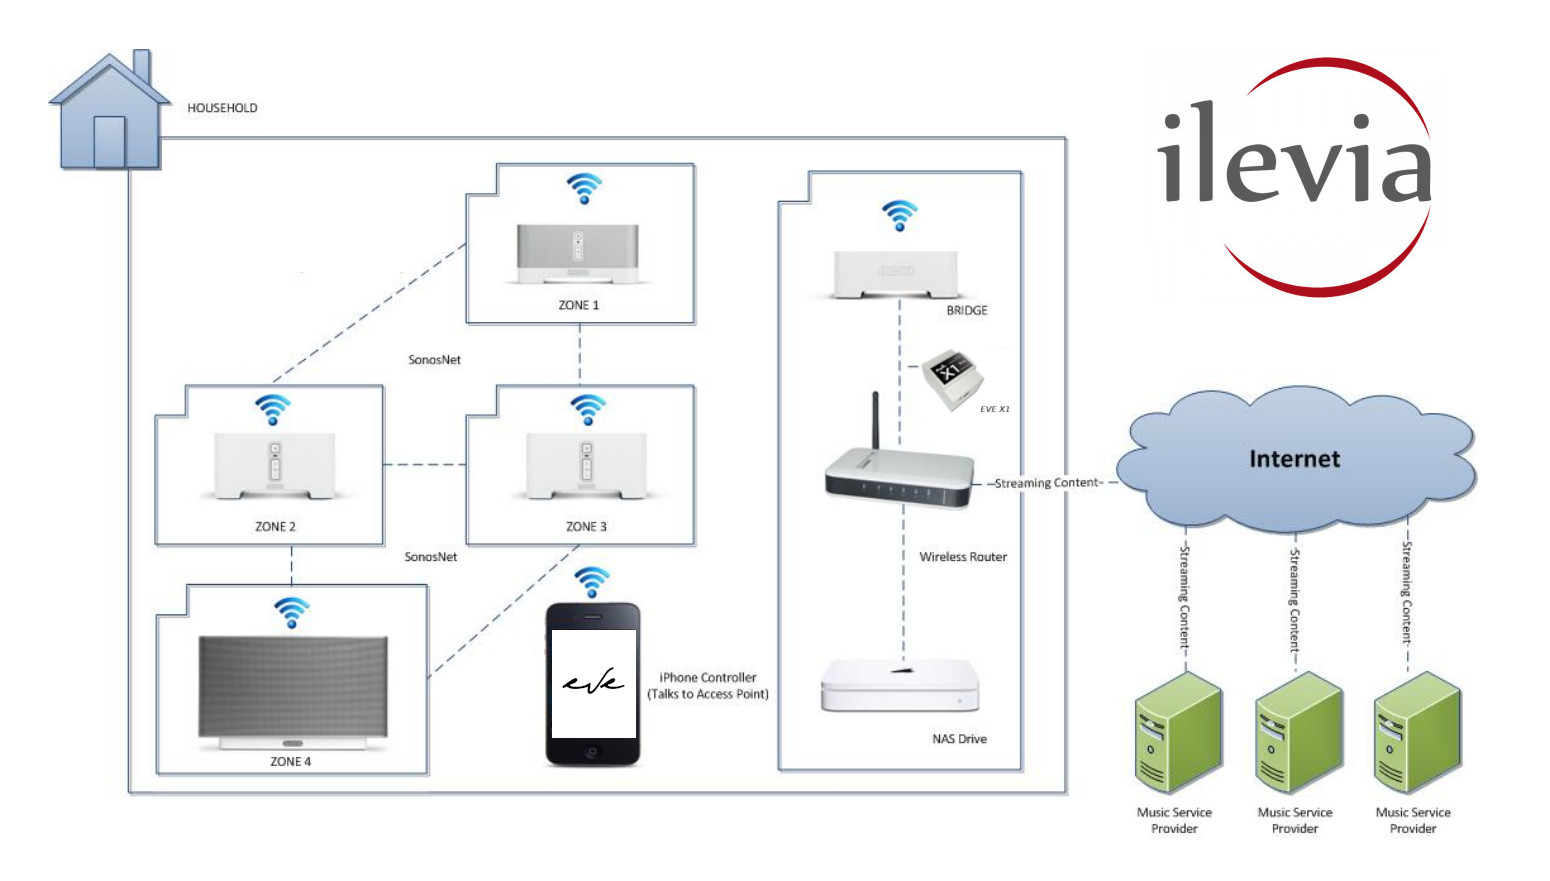 How the UPnP protocol works inside the Home automation system EVE